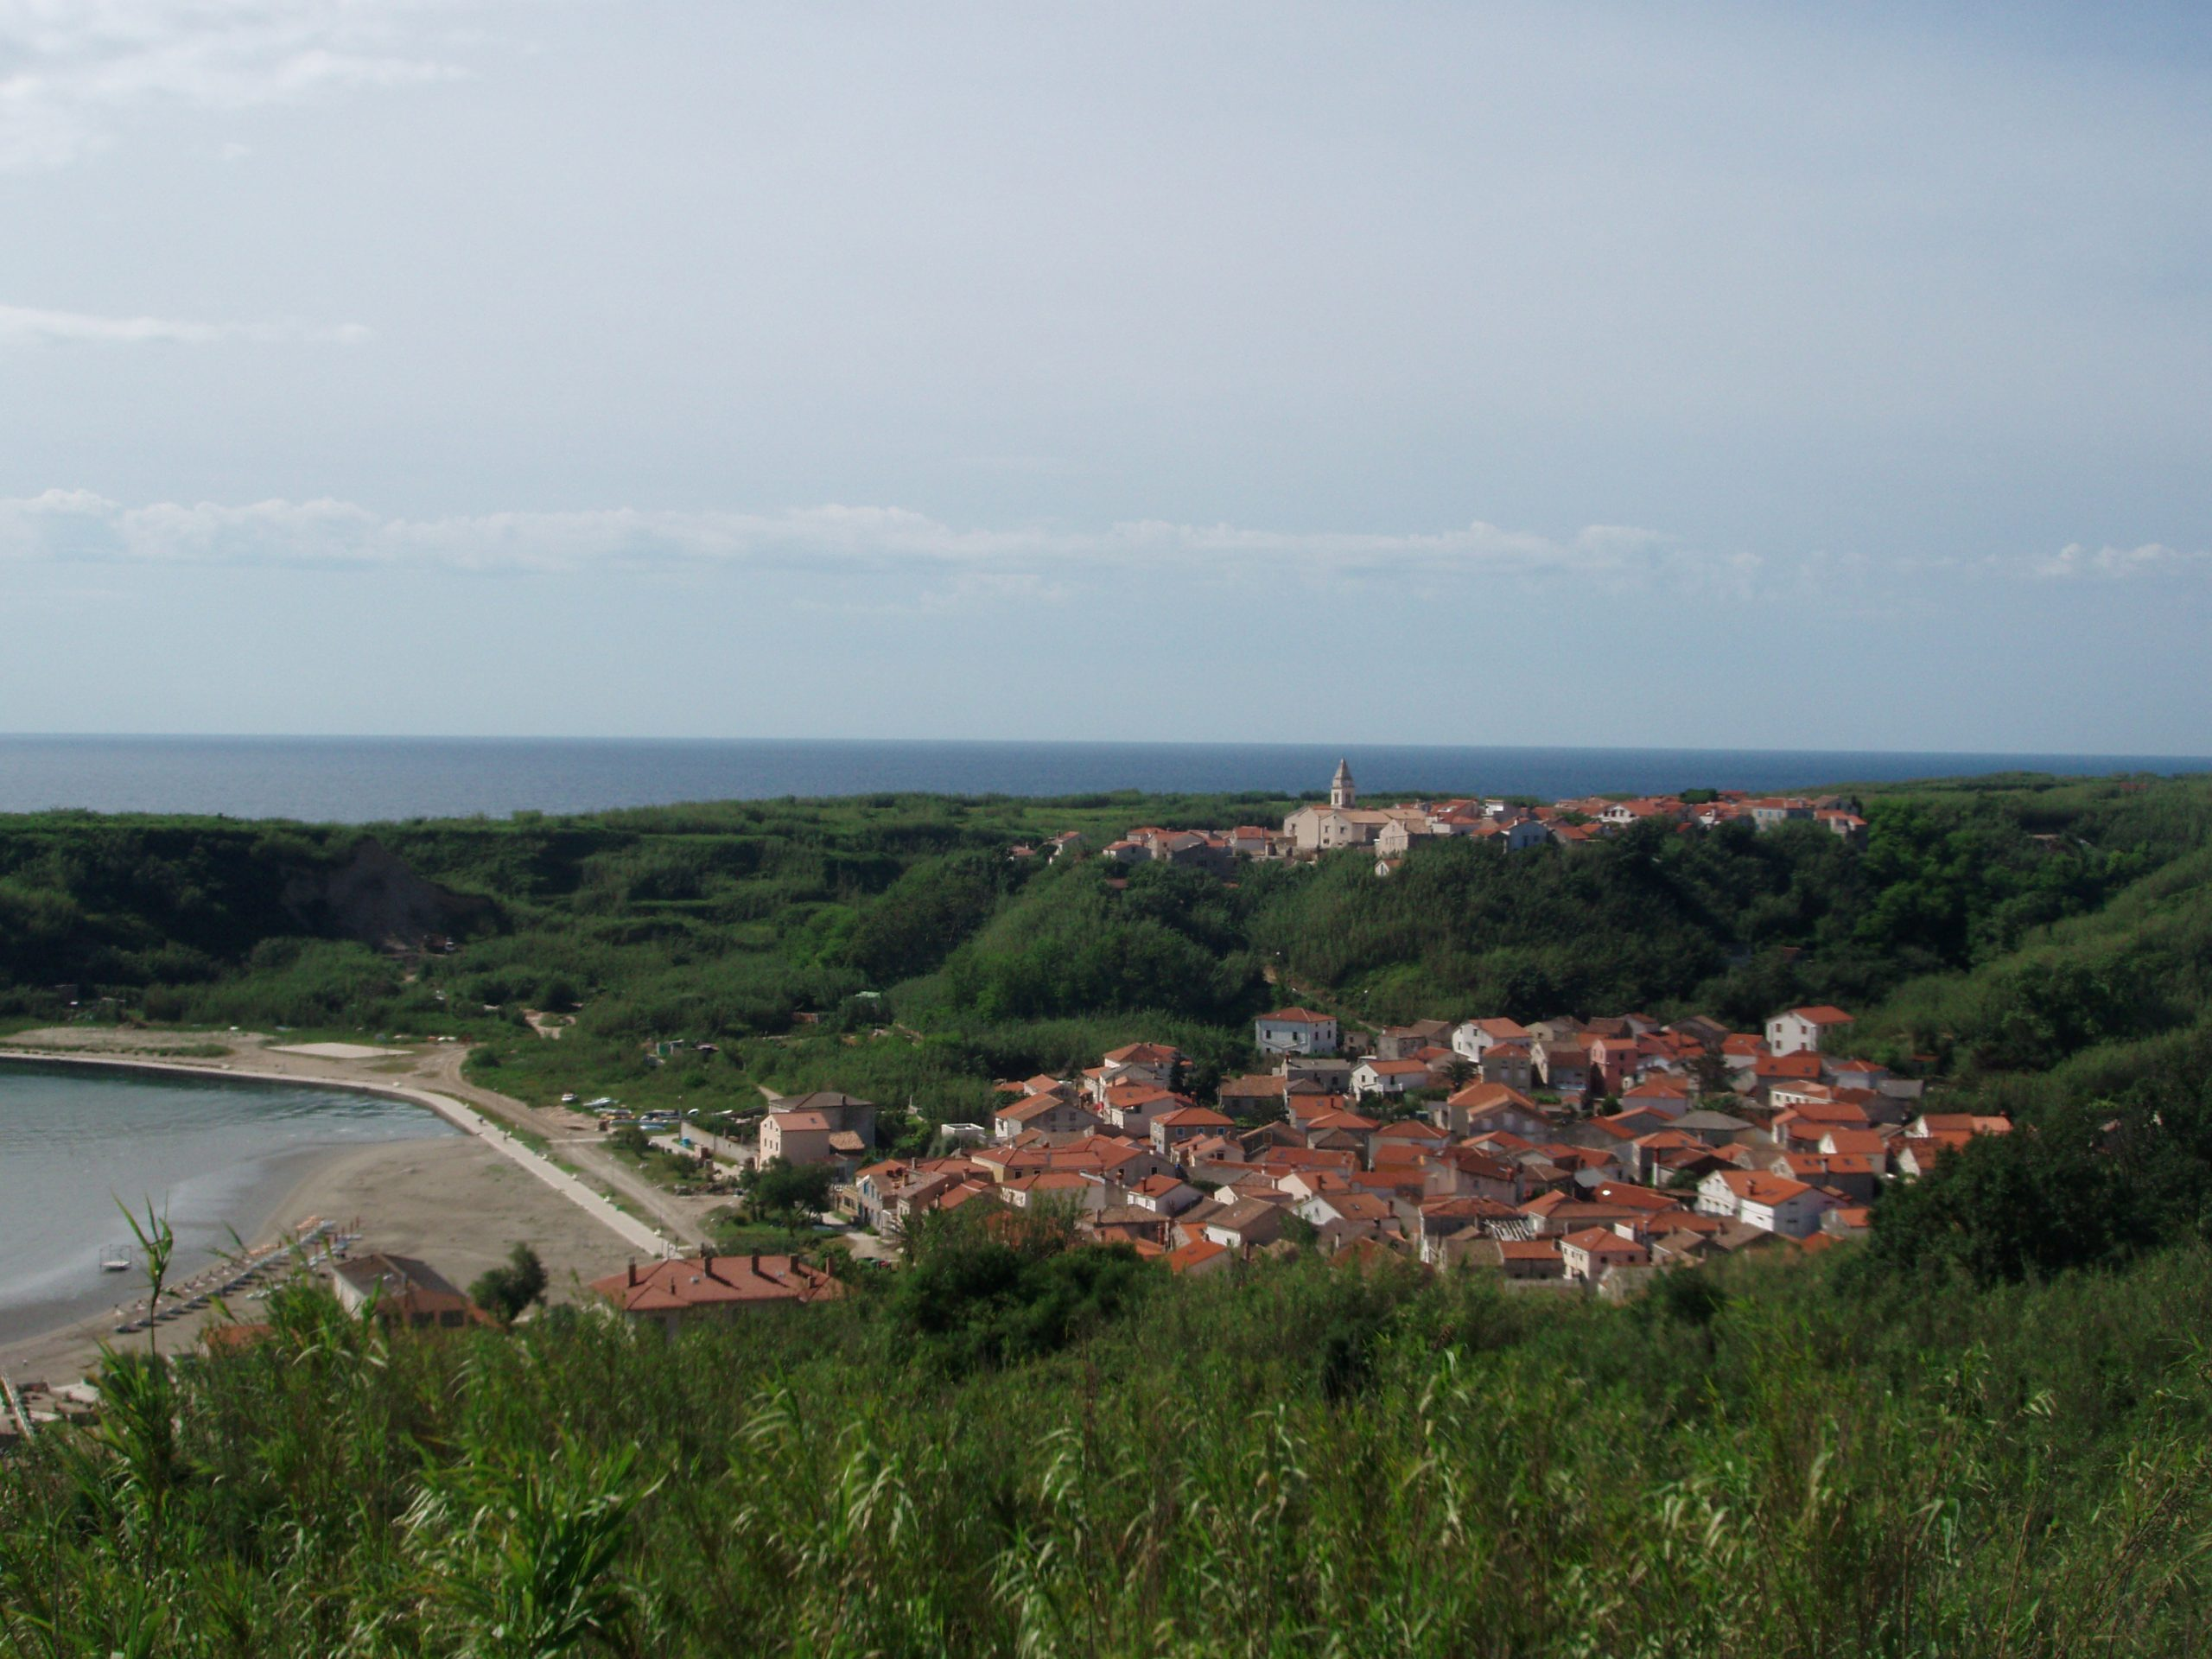 The upper and lower village of Susak, the island made of reed and sand, as seen from the path that leads toward the Susak Lighthouse. The lighthouse was built in 1881, and has been run by the same family for over thirty years now. They tend to the light, their garden, and their cats.